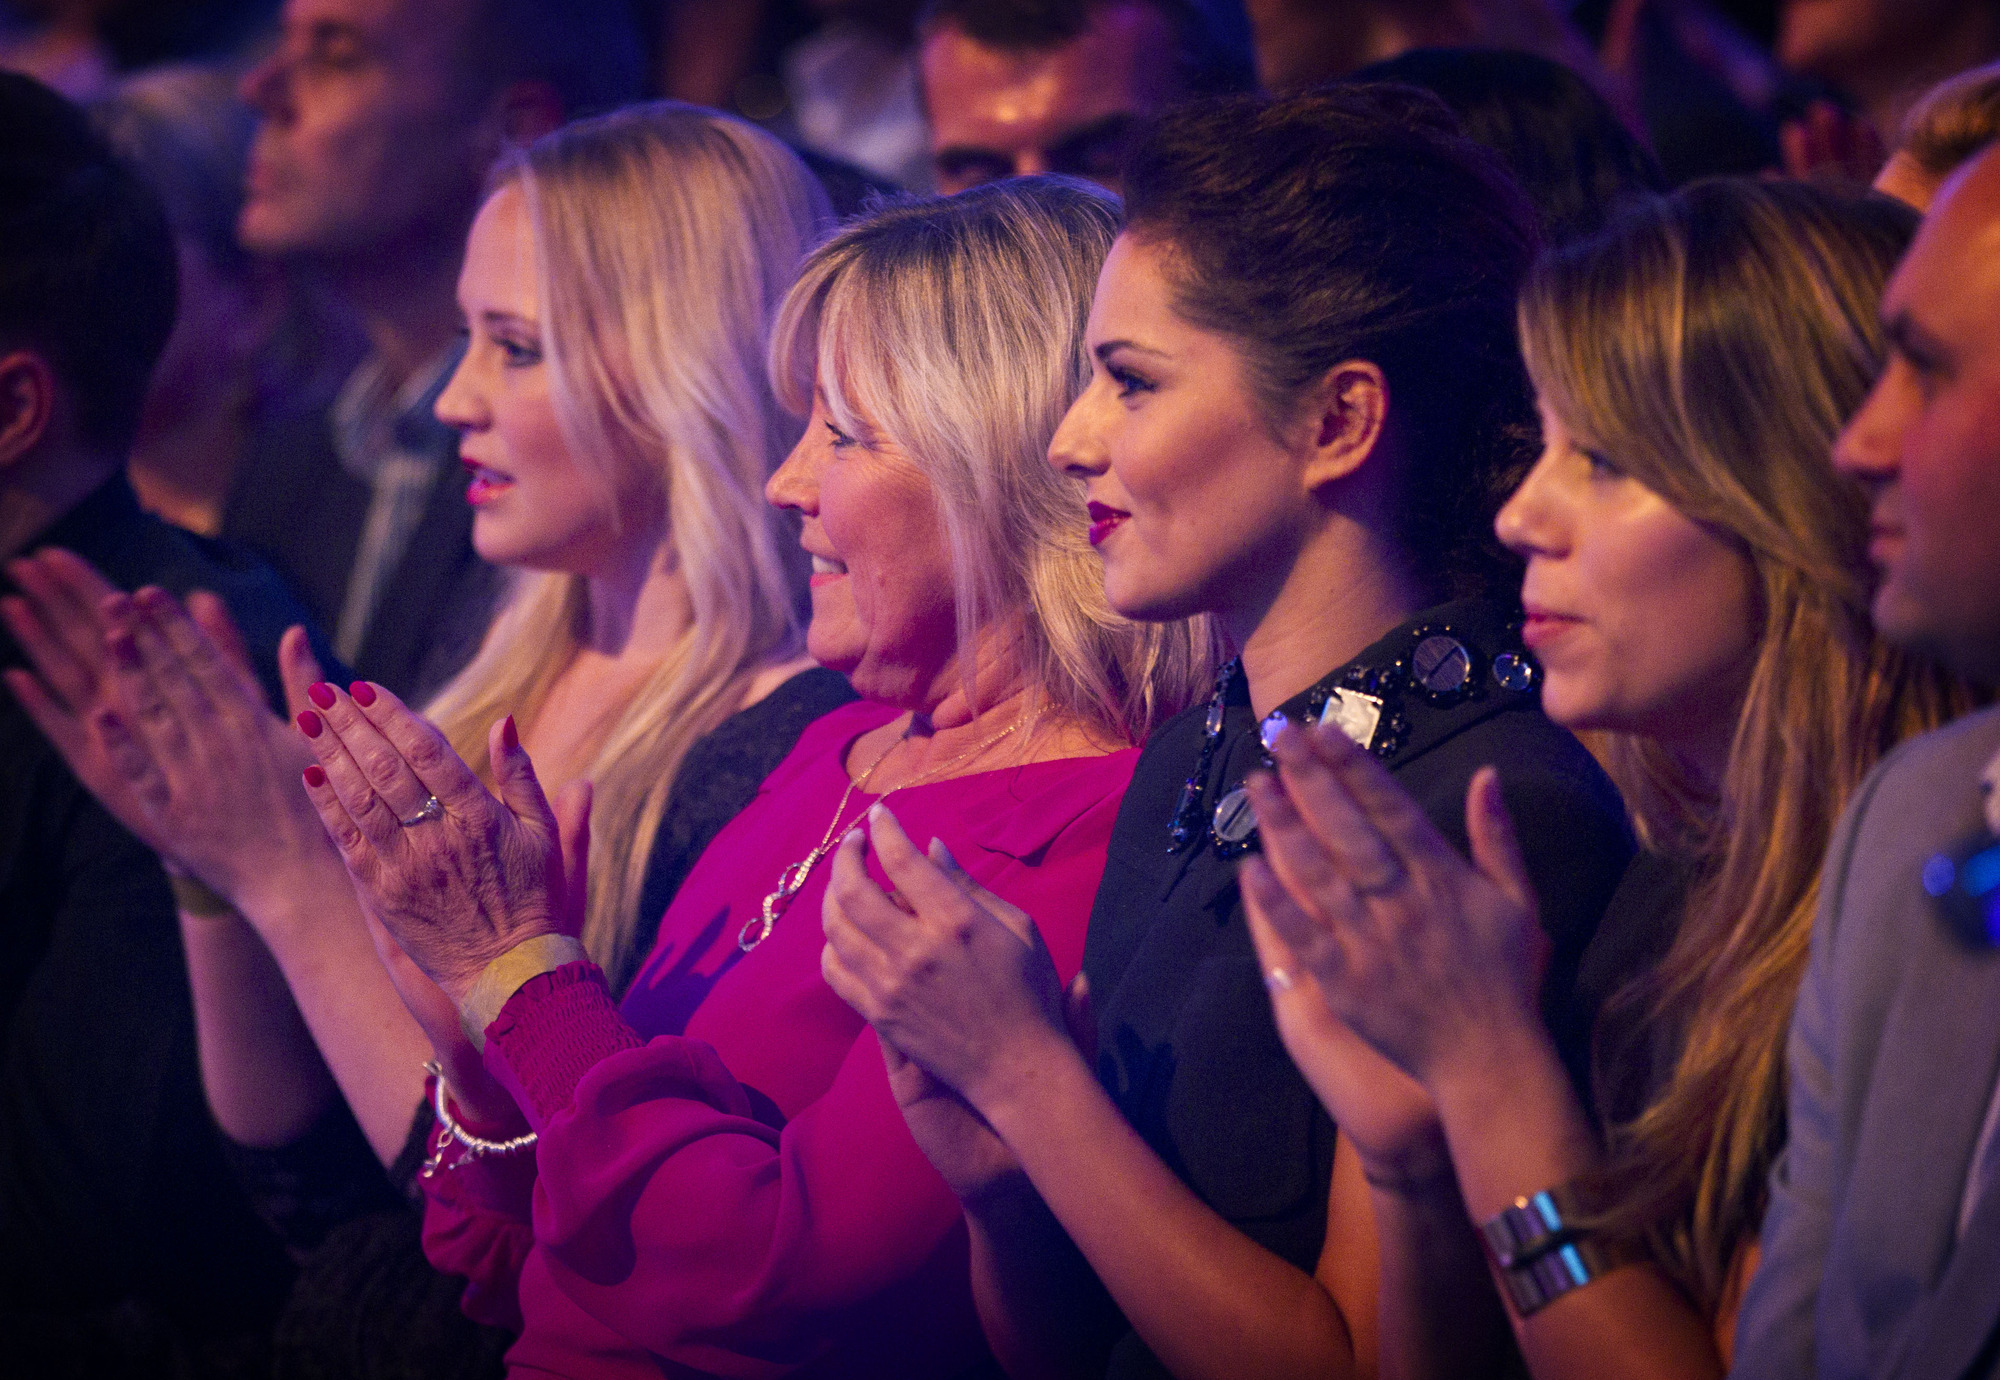 Cheryl Cole (3rd from right) in the audience of Strictly Come Dancing. Cheryl Cole - (C) BBC - Photographer: Guy Levy